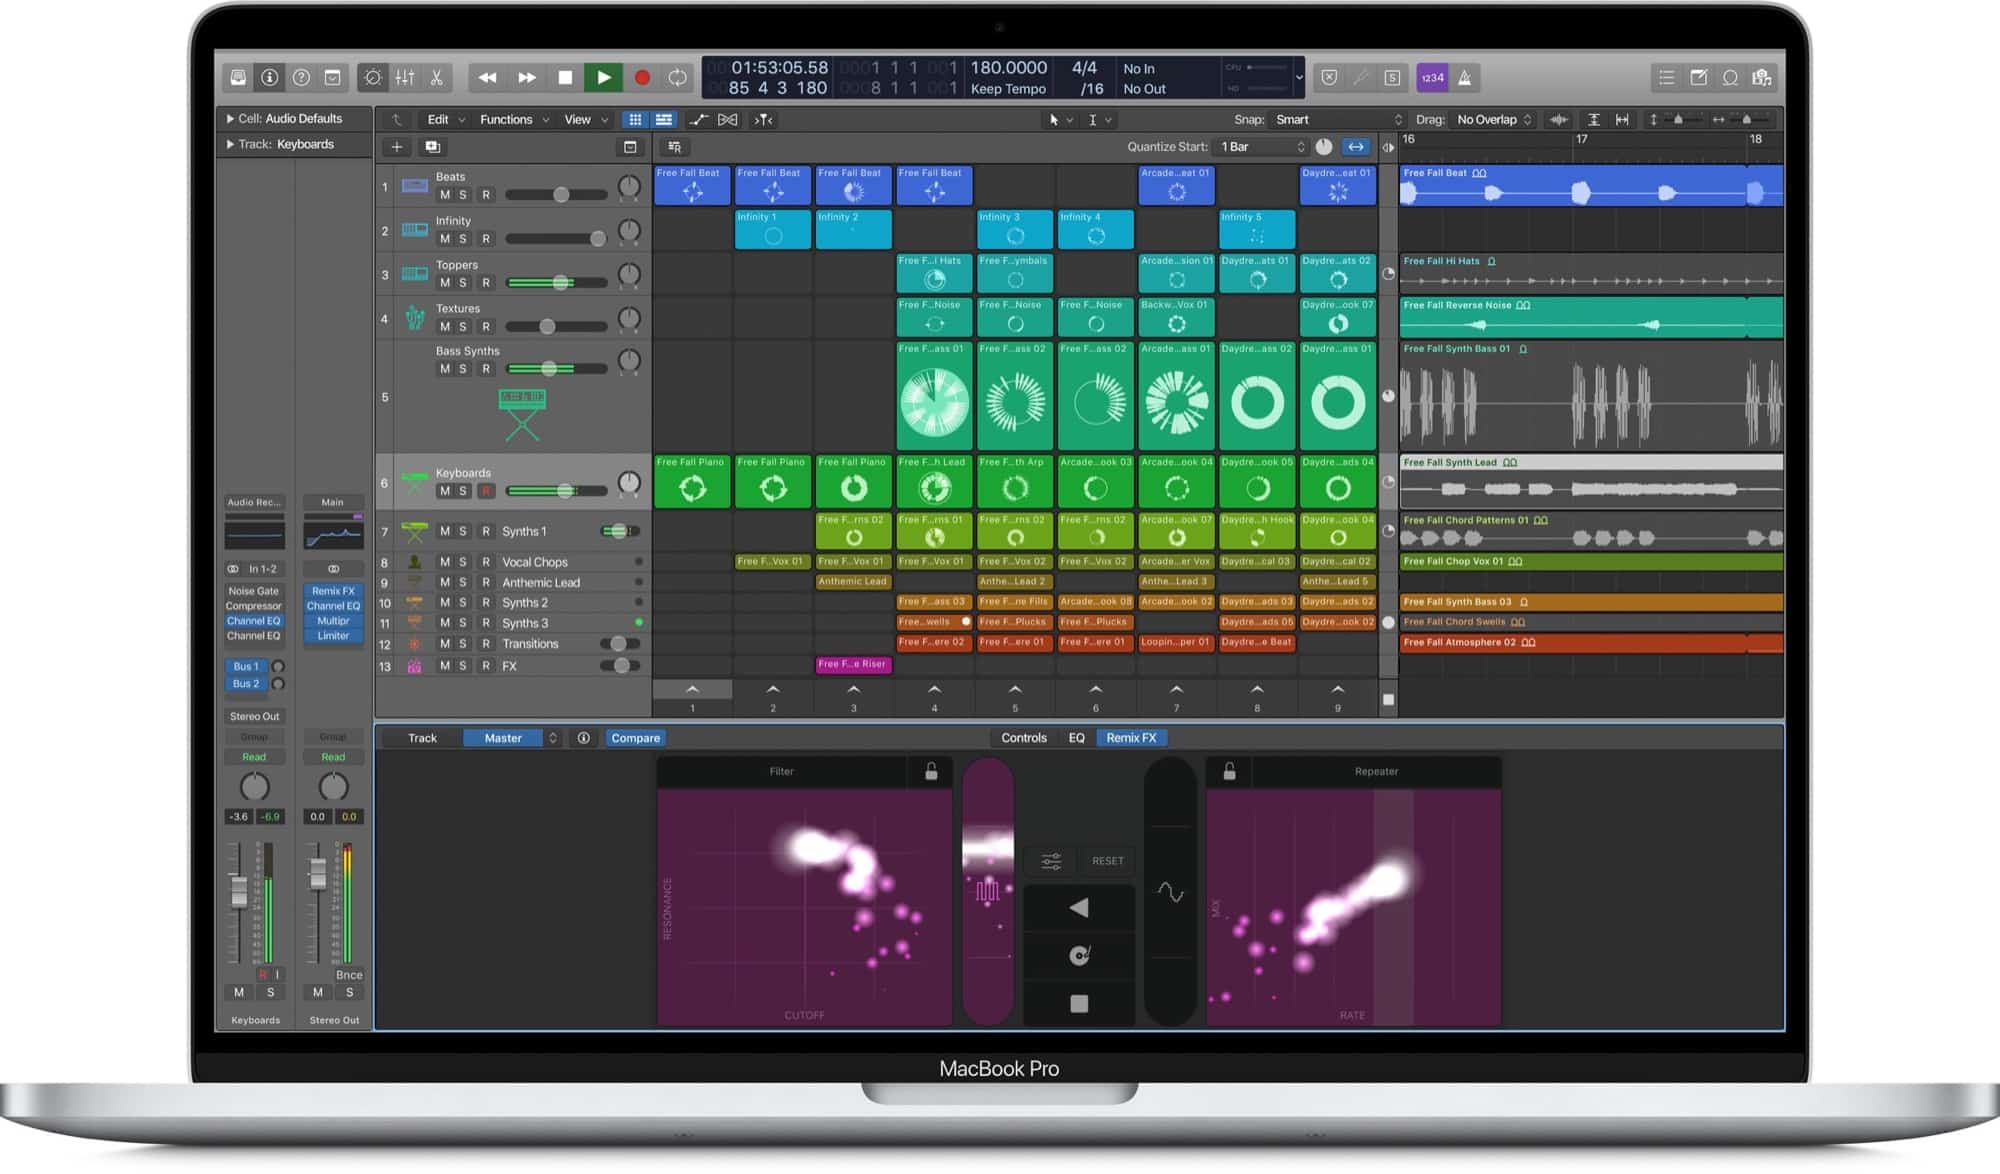 Logic Pro X Live Loops: This screenshot shows an as-yet unreleased version of Logic Pro X